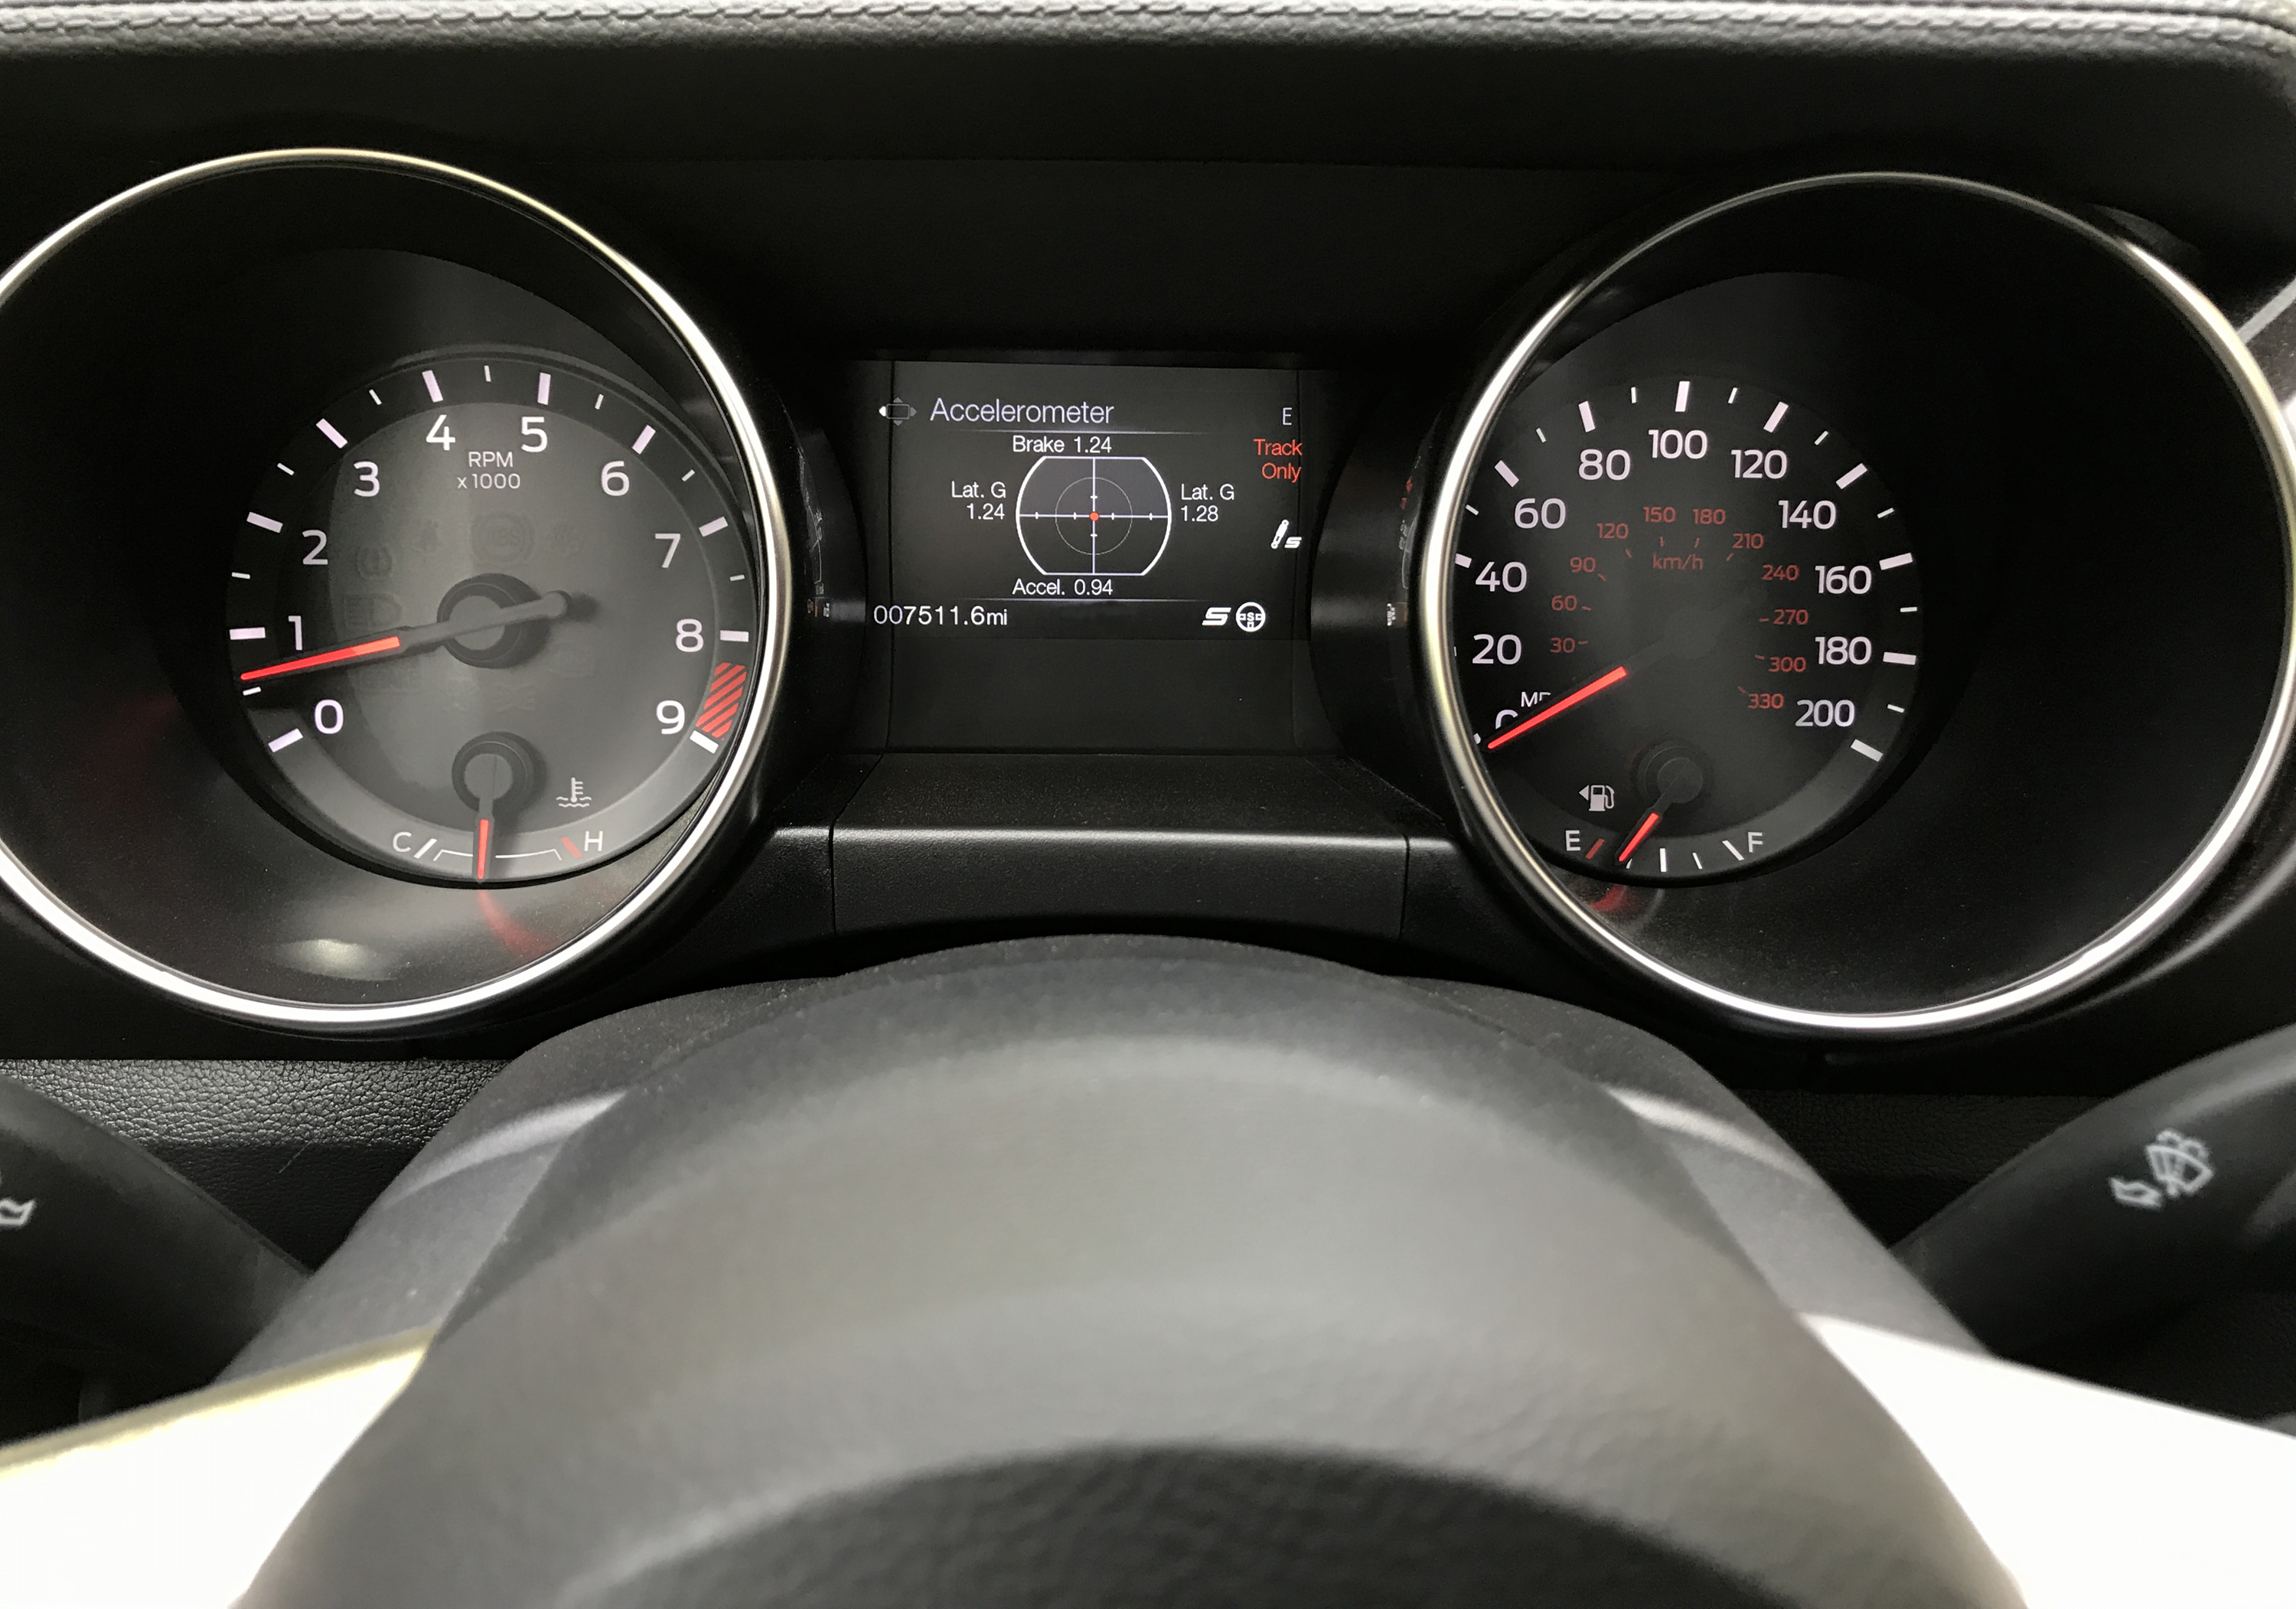 2017 Ford Mustang Shelby GT350R Gauges